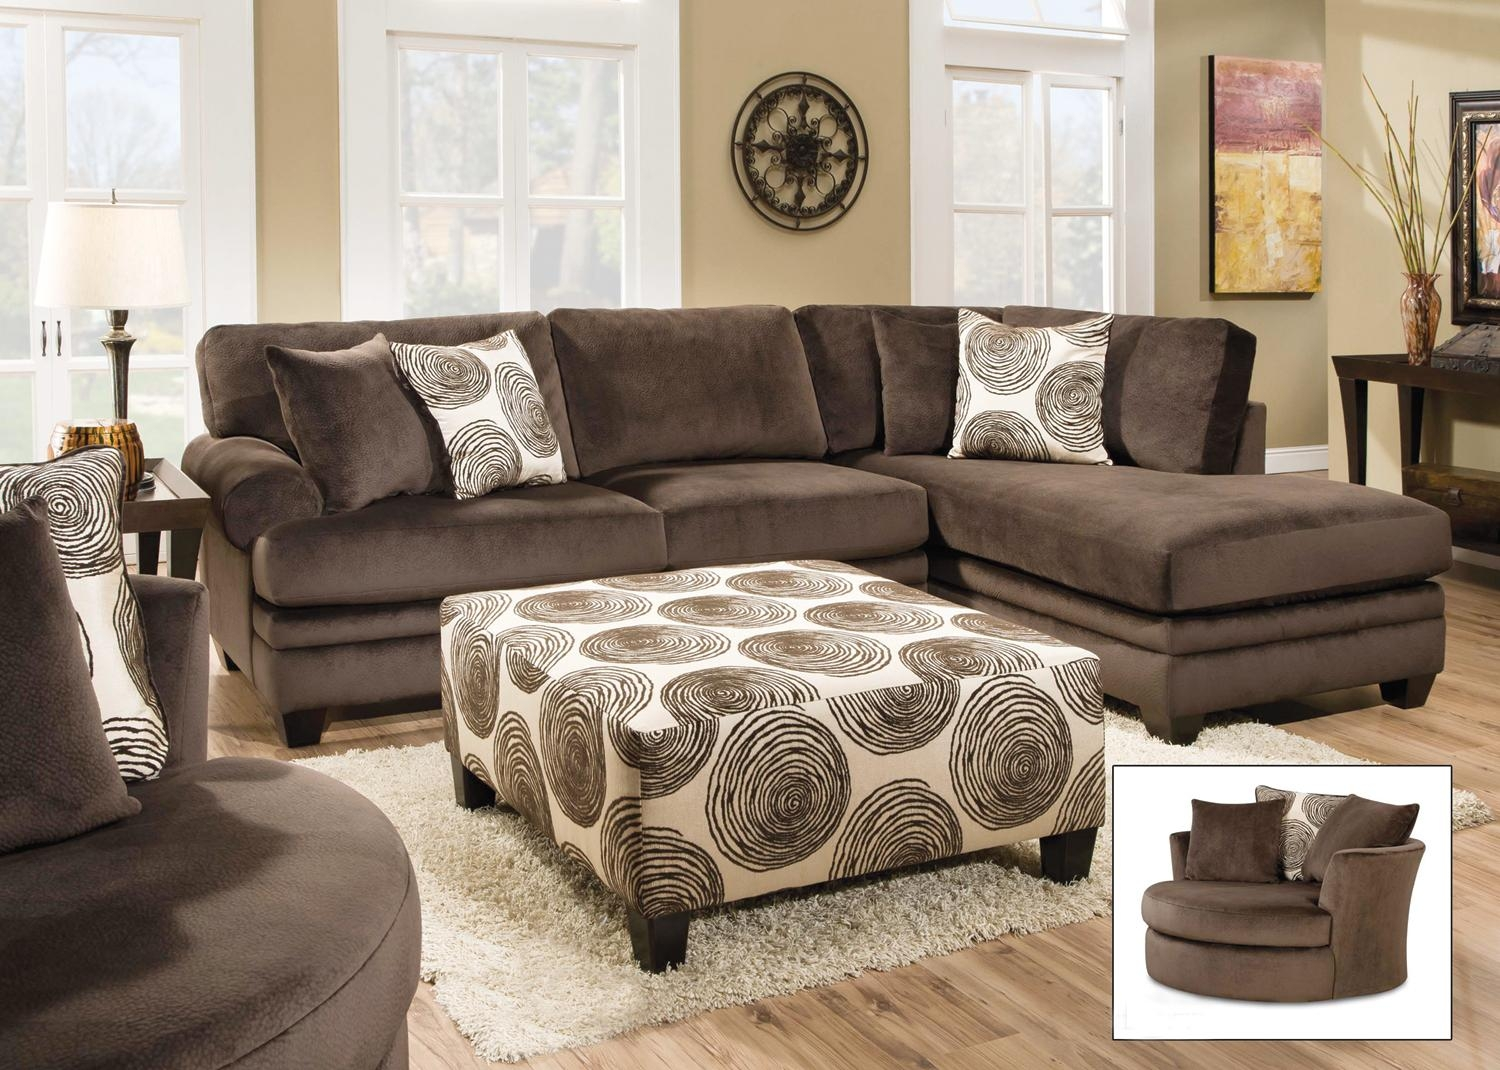 Big Lots Sofa Bed | Tehranmix Decoration In Big Lots Sofas (Image 1 of 20)